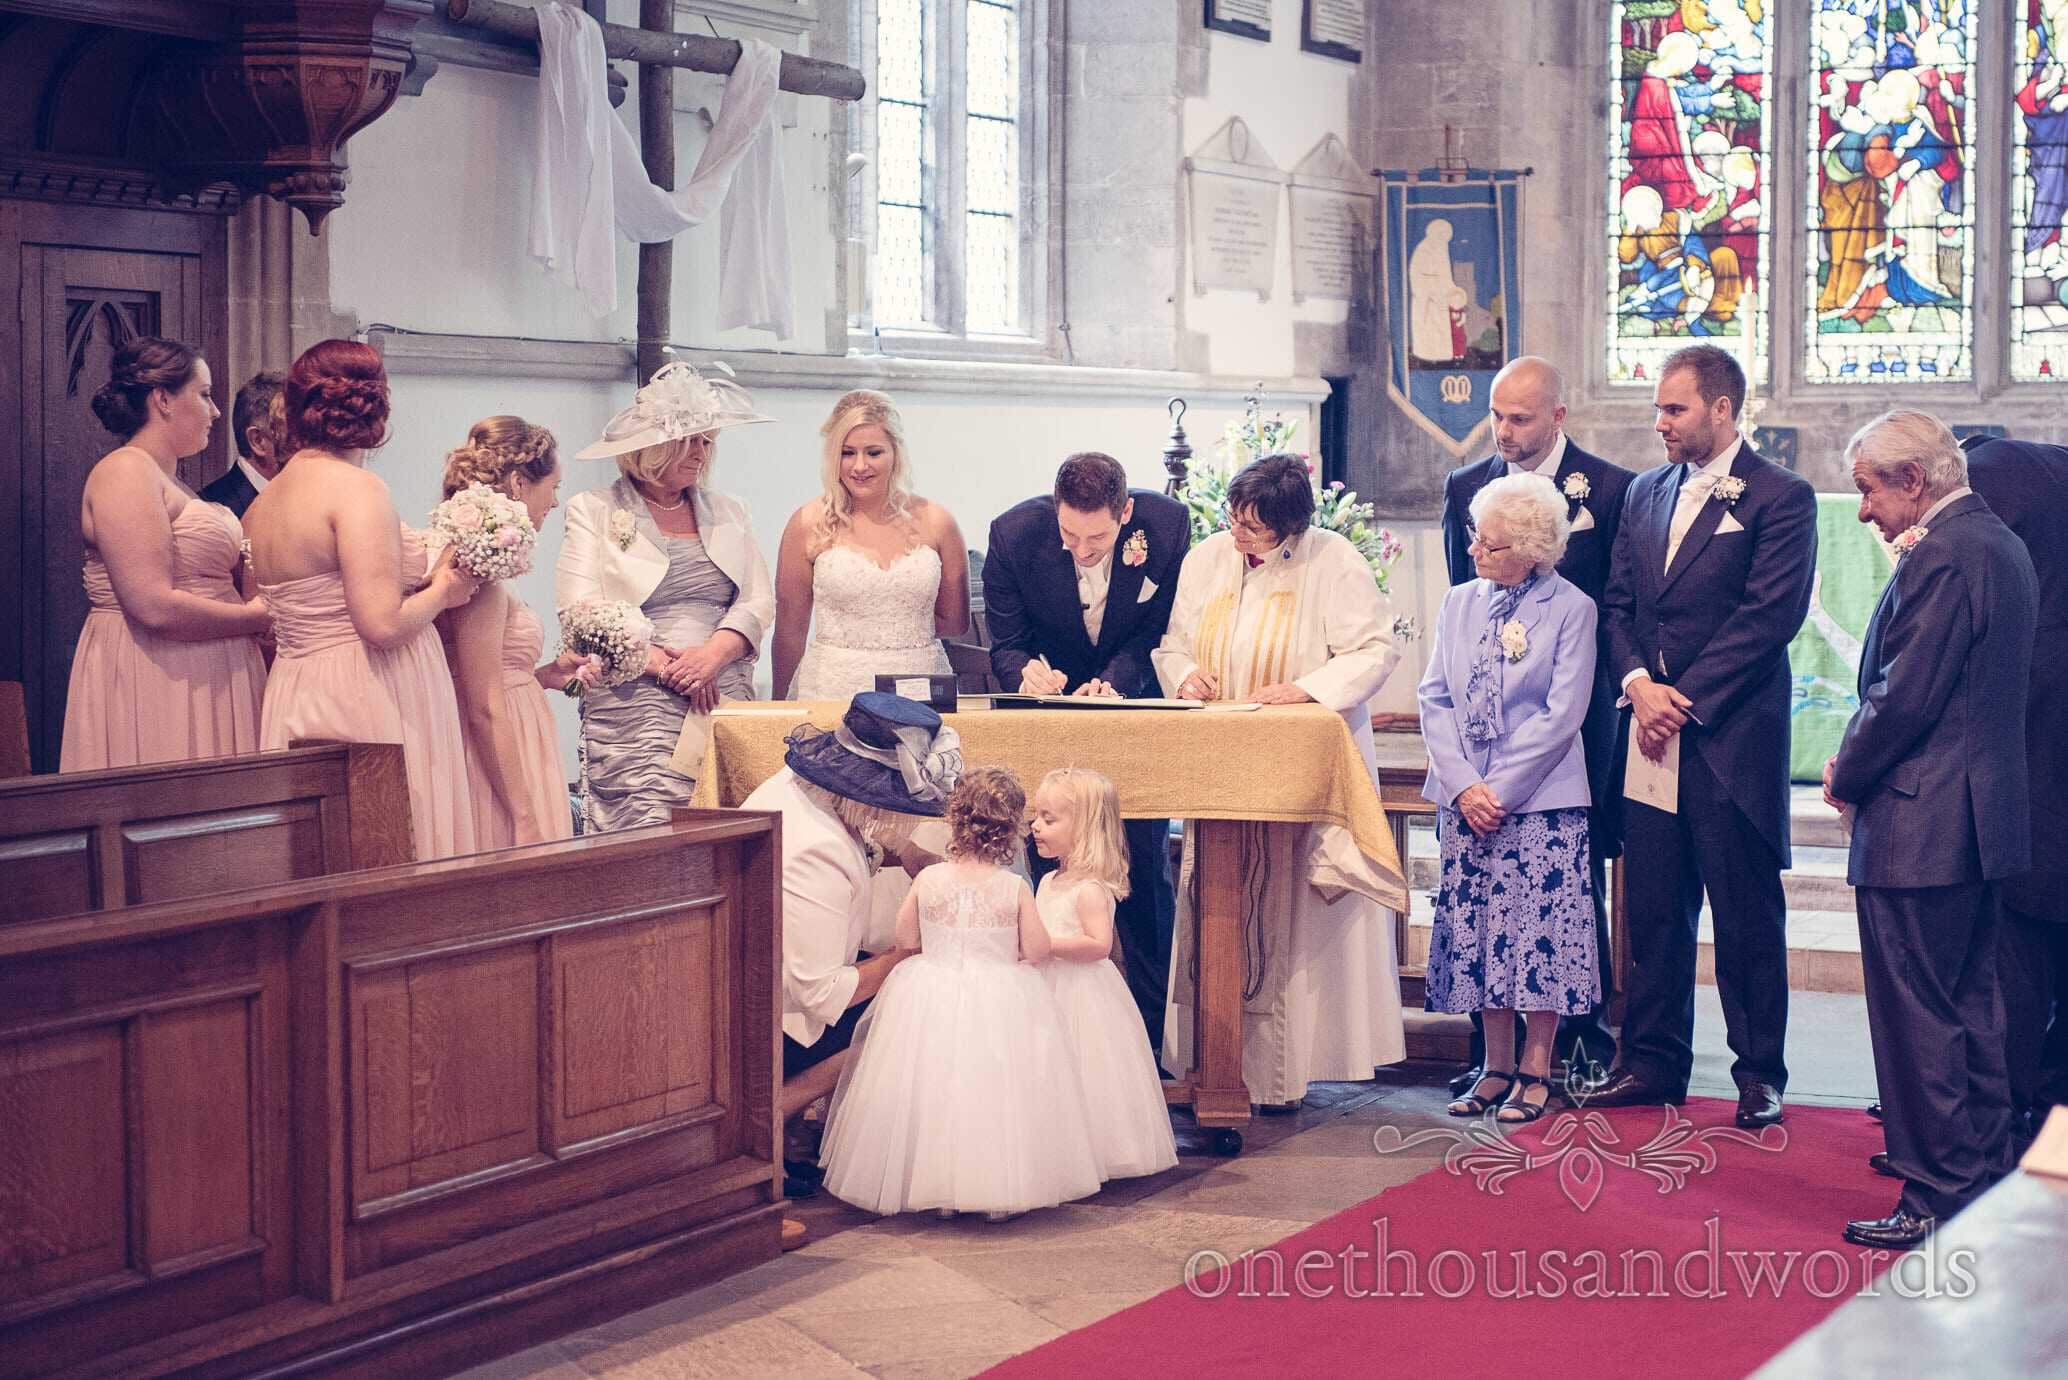 Wedding party with bride and groom signing the register at church wedding